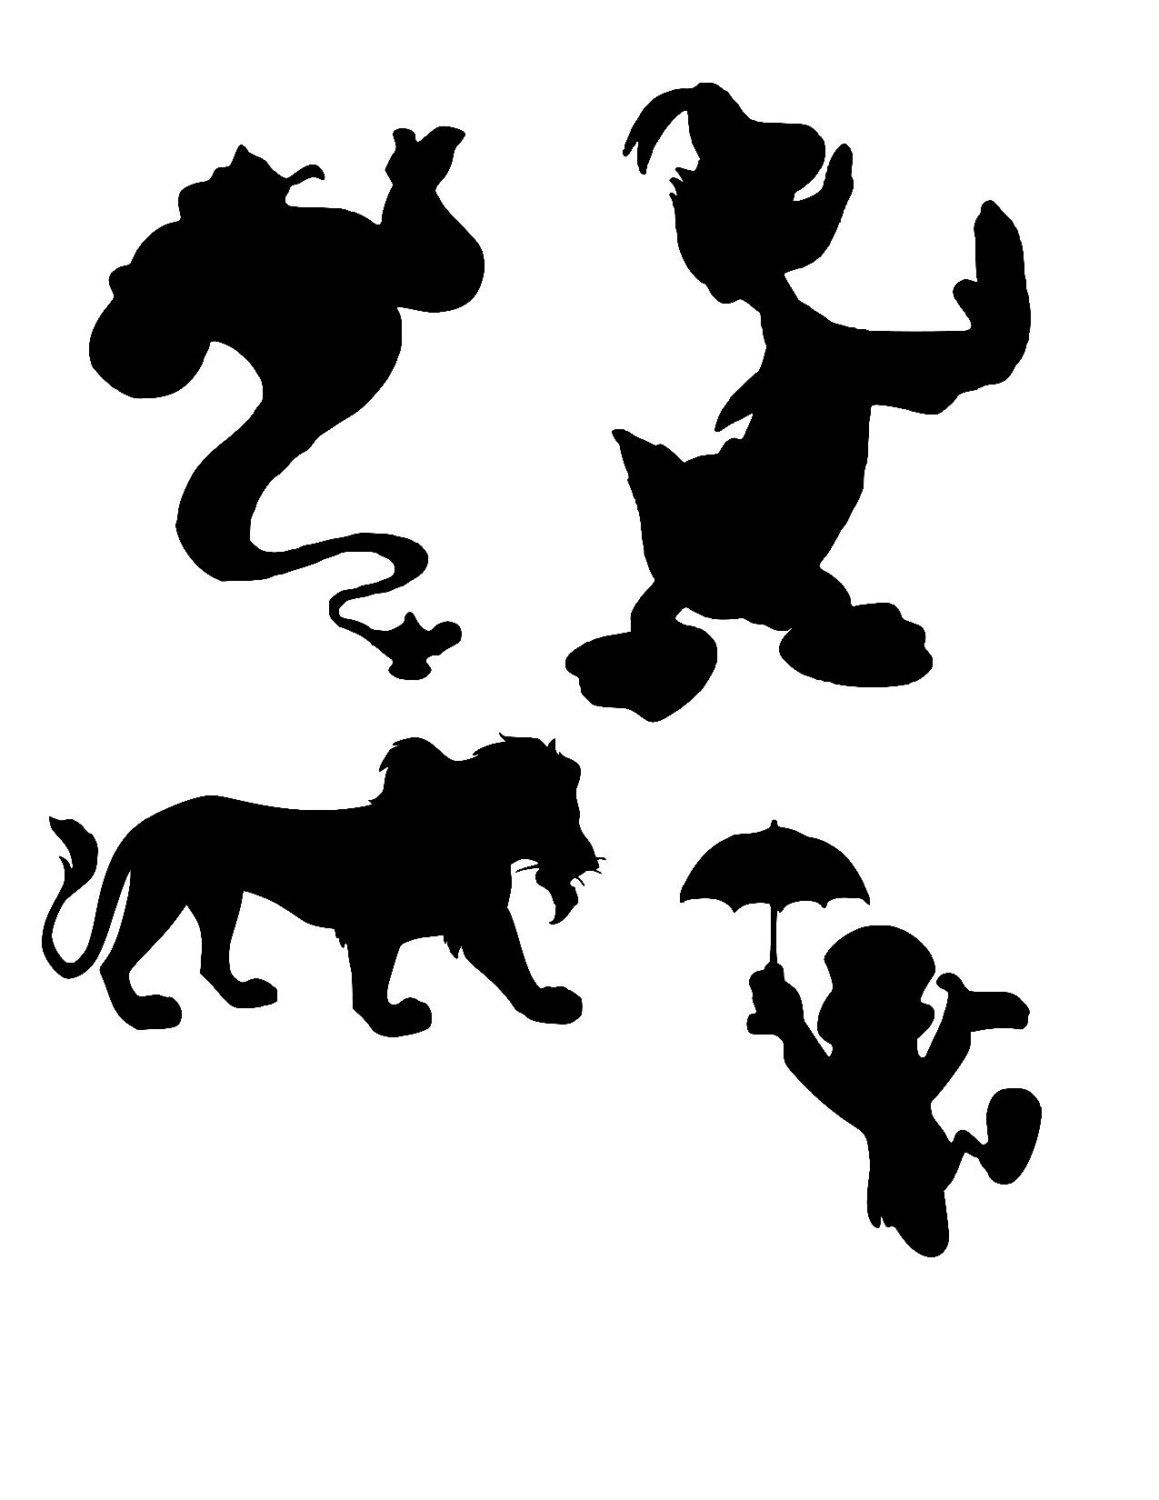 1159x1500 Disney Silhouette Svg, Disney Svg, Donald Svg, Disney Genie Svg